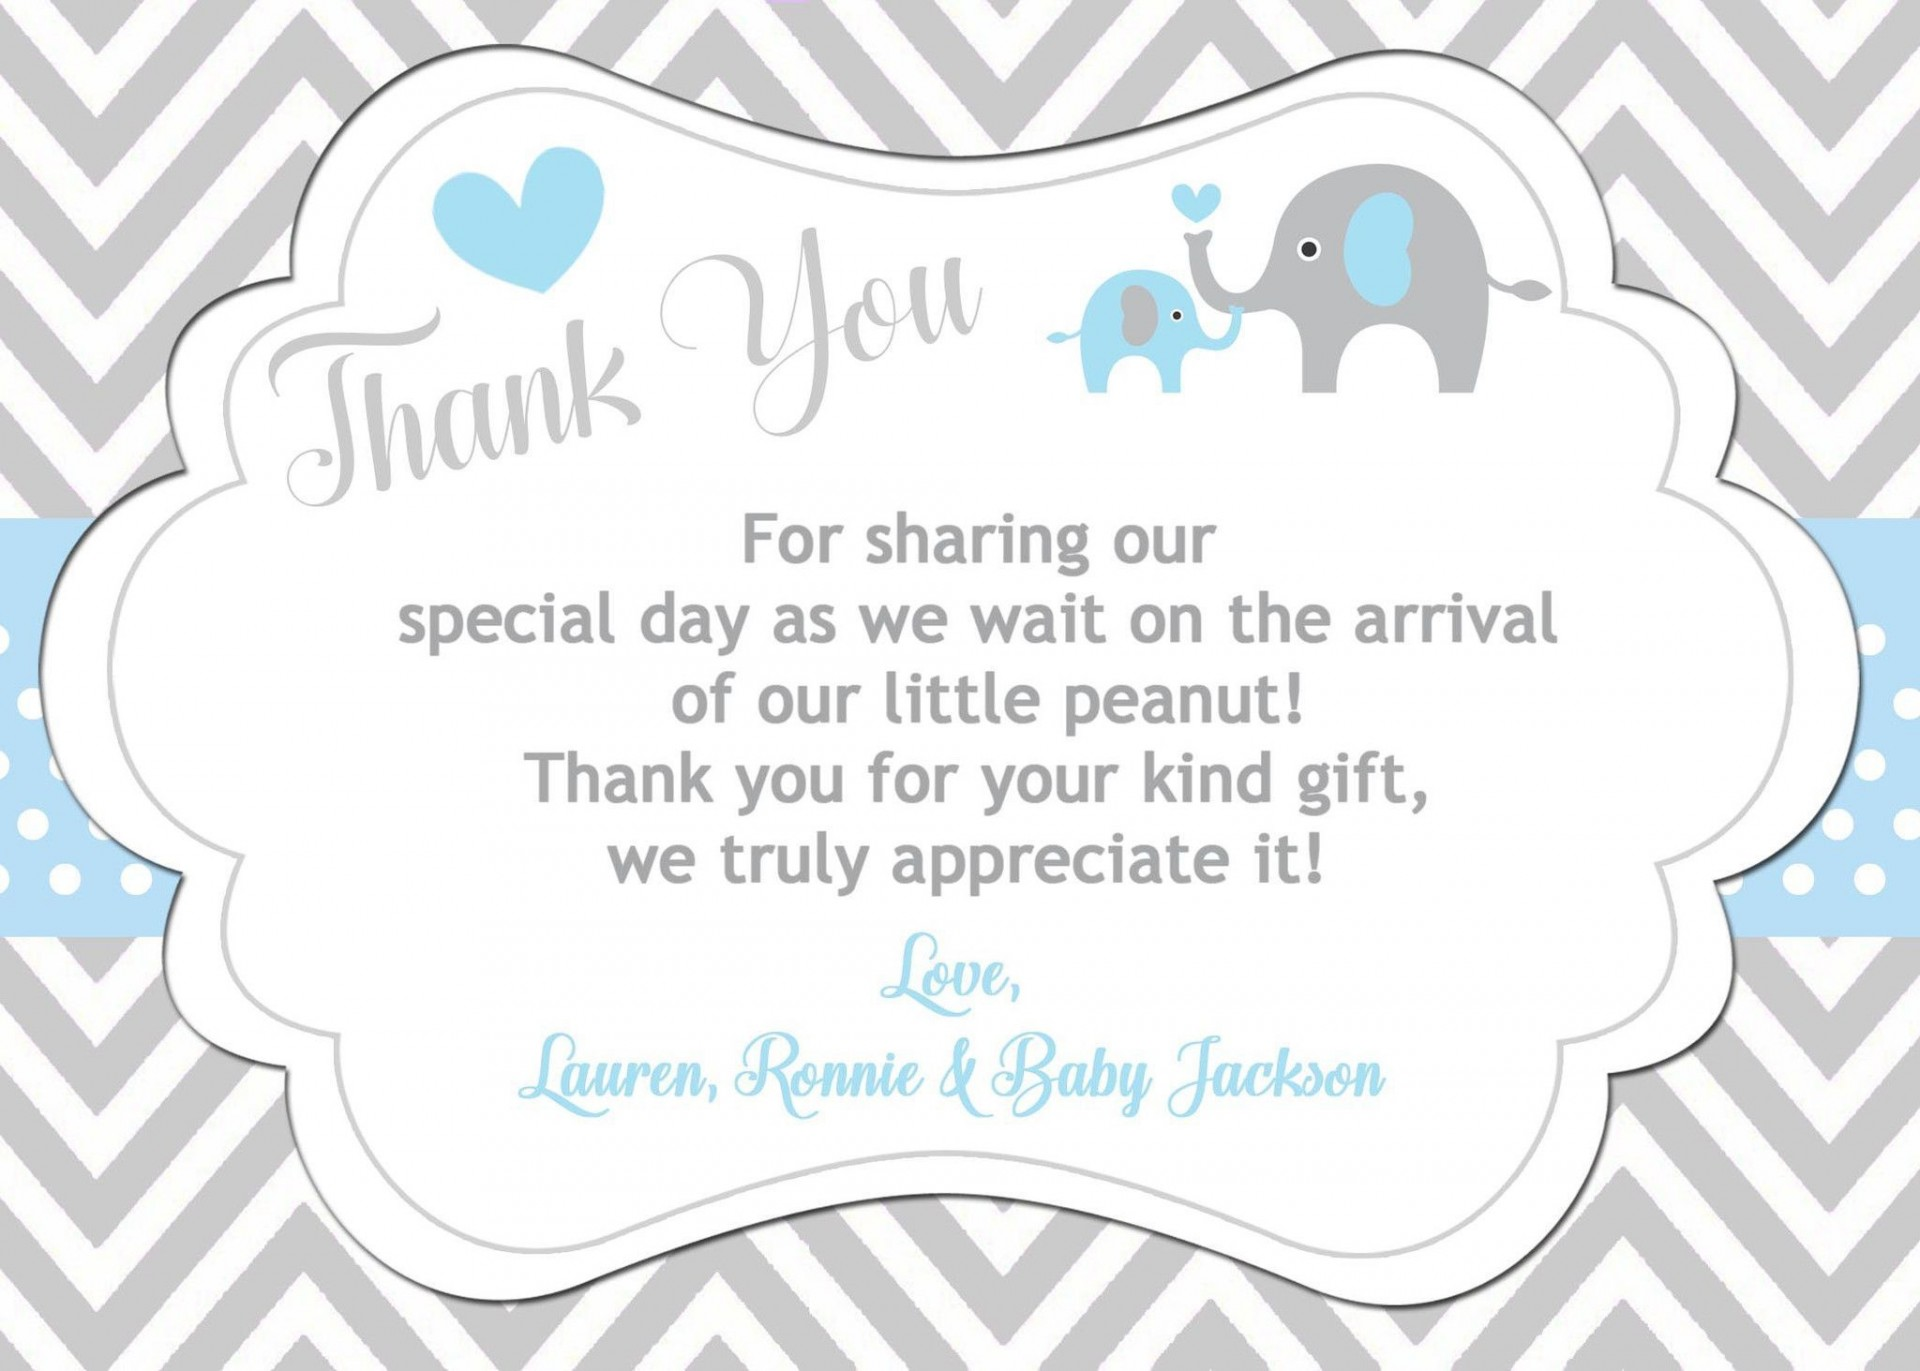 003 Shocking Thank You Note Template Baby Shower High Def  Card Free Sample For Letter Gift1920